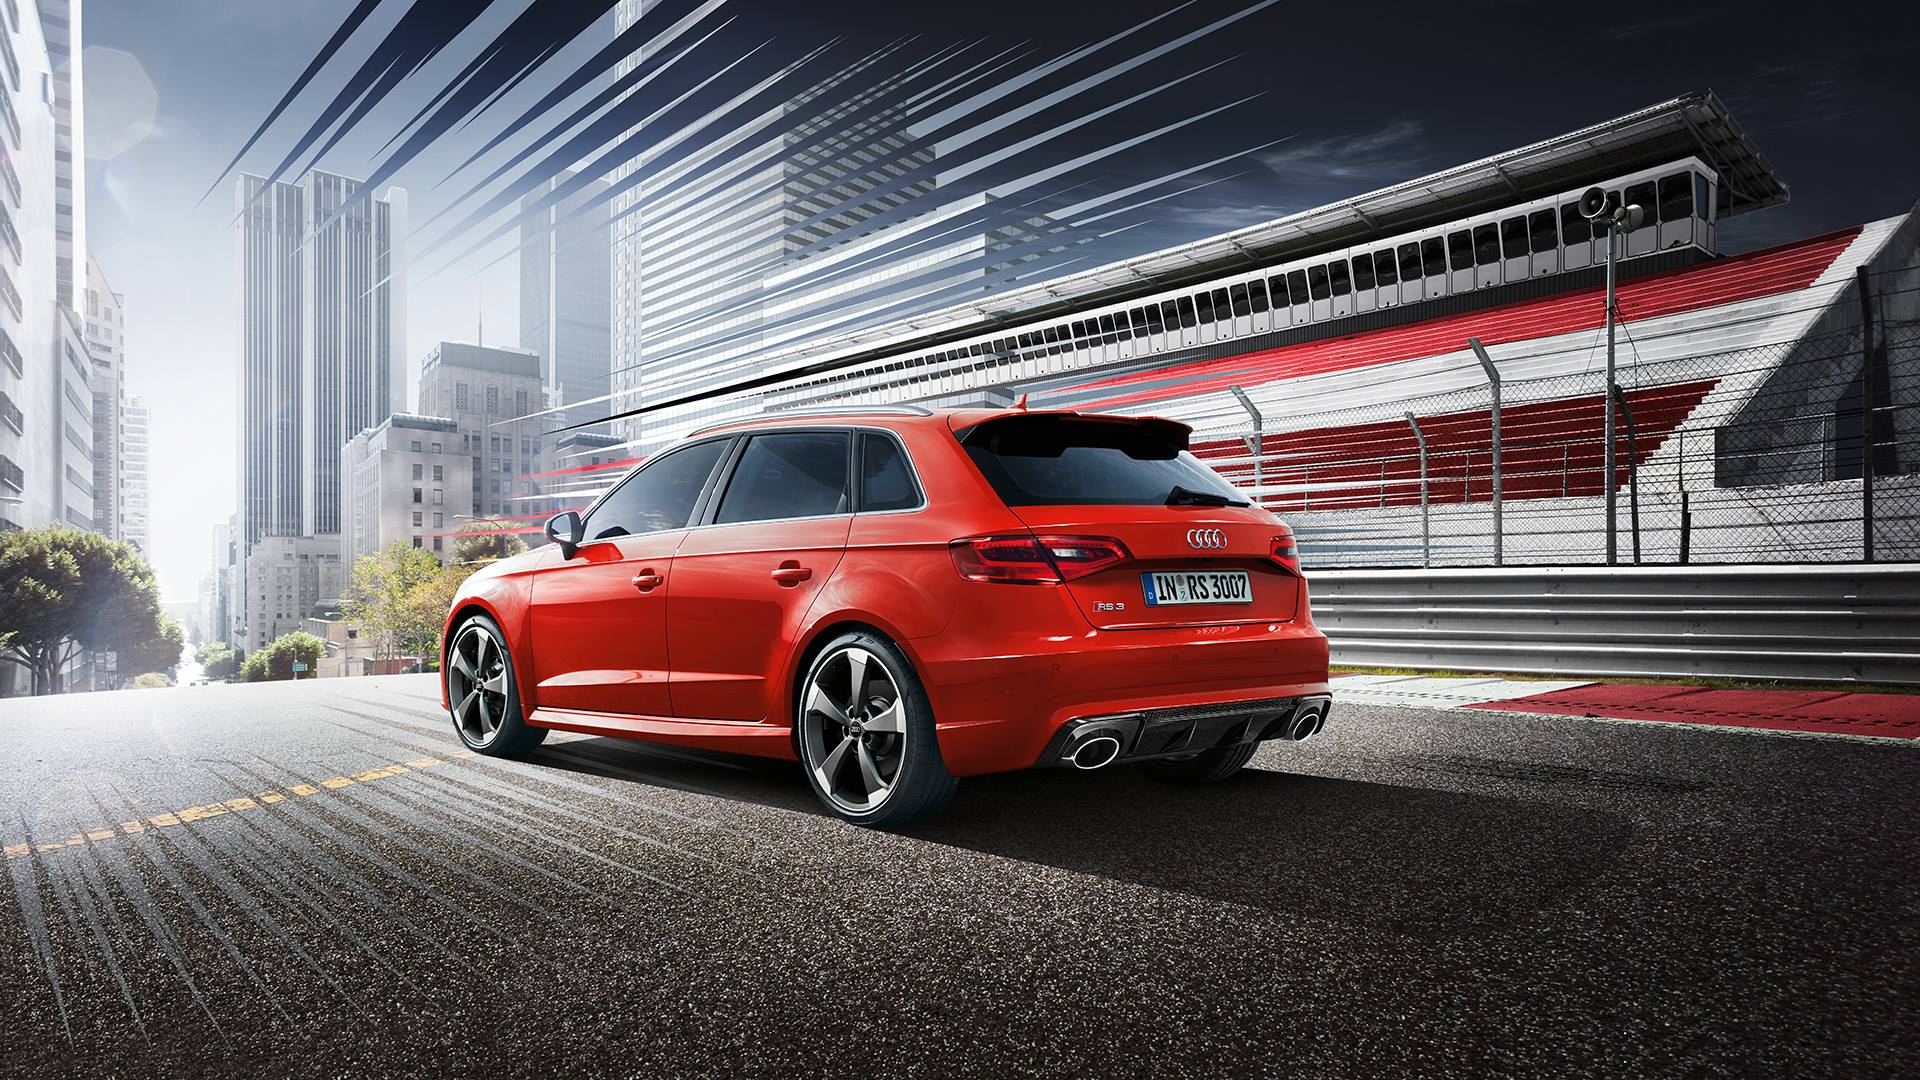 Rs3 Download Download Awesome Audi Rs3 Wallpaper 47376 1920x1080 Px High